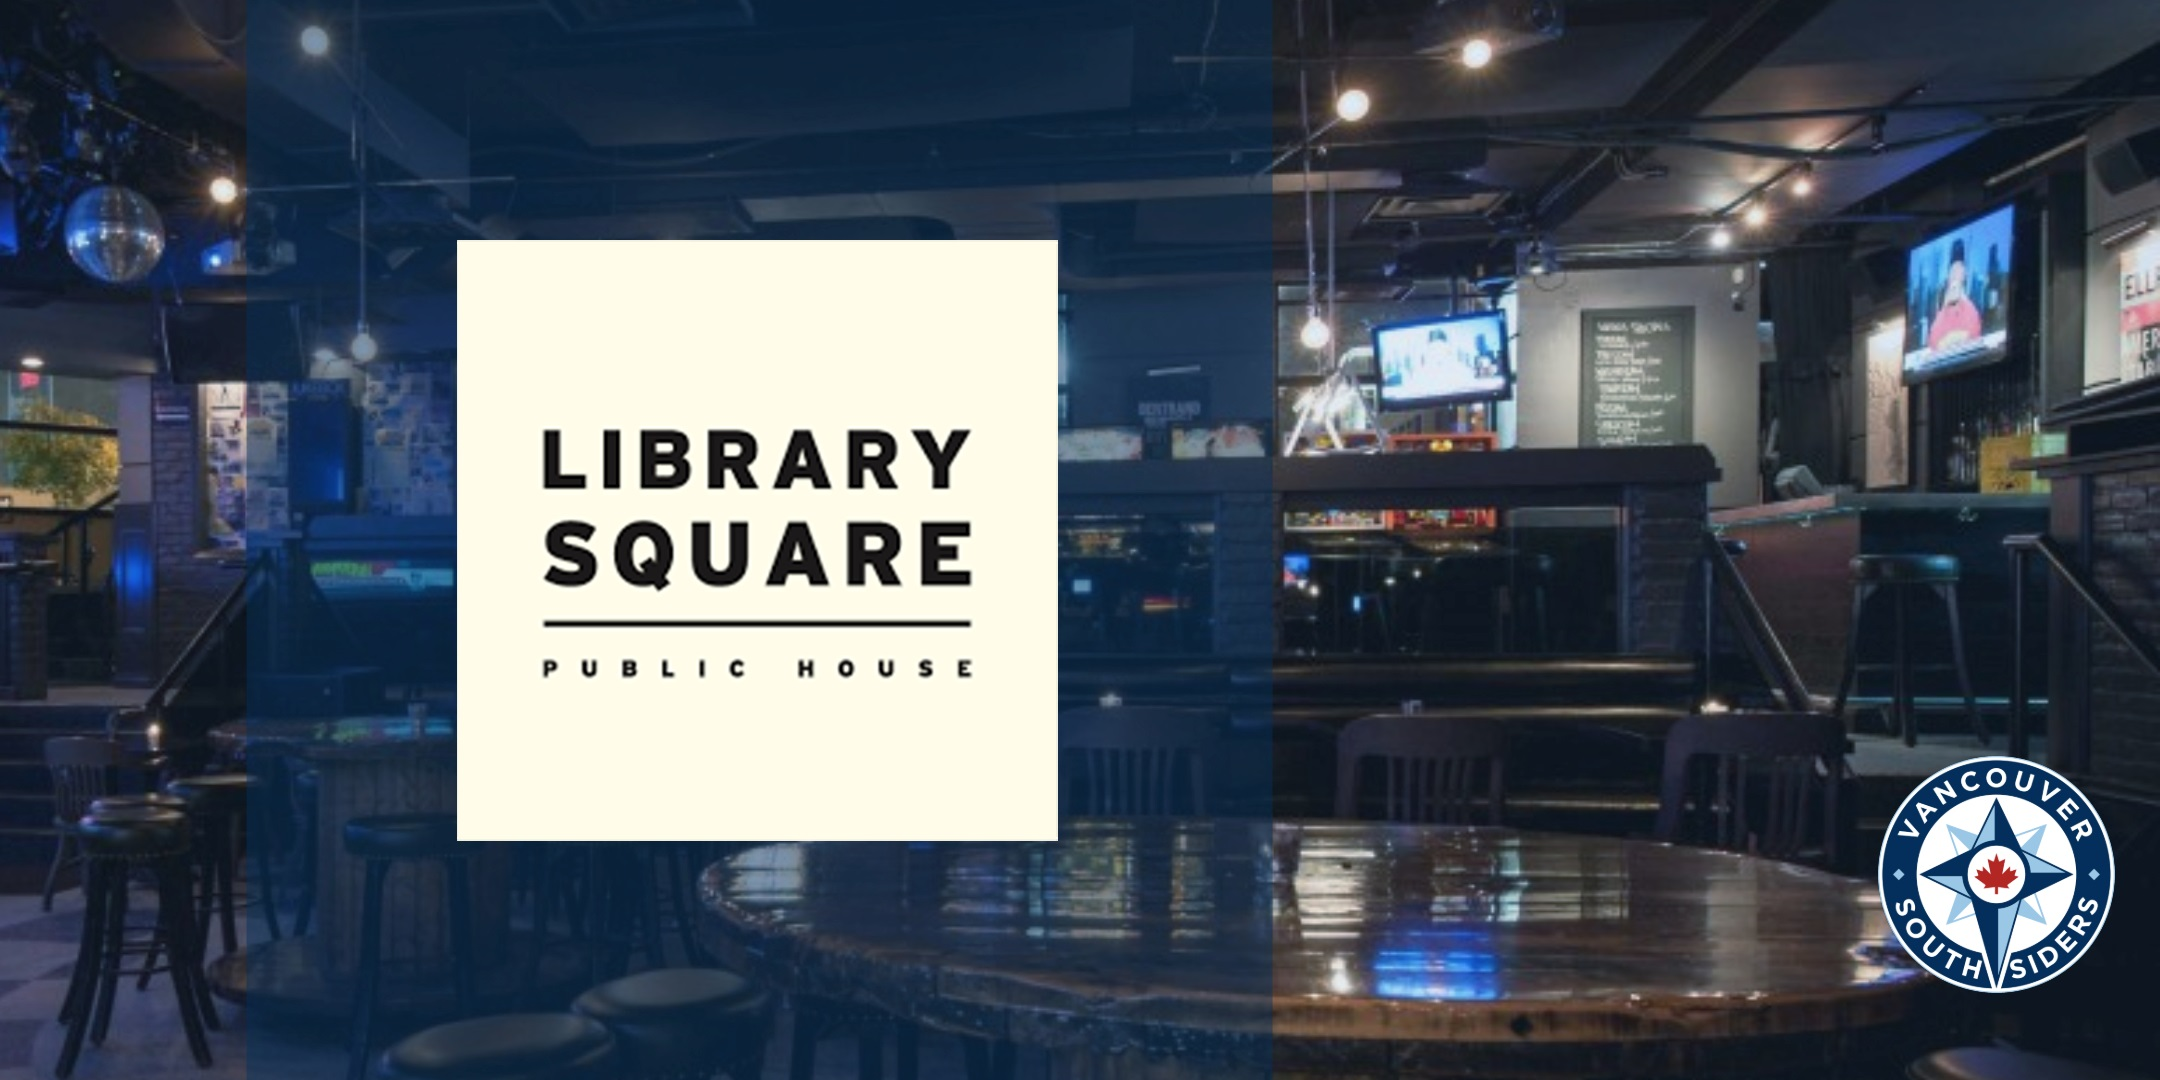 New Partner Pub! - Library Square Public House